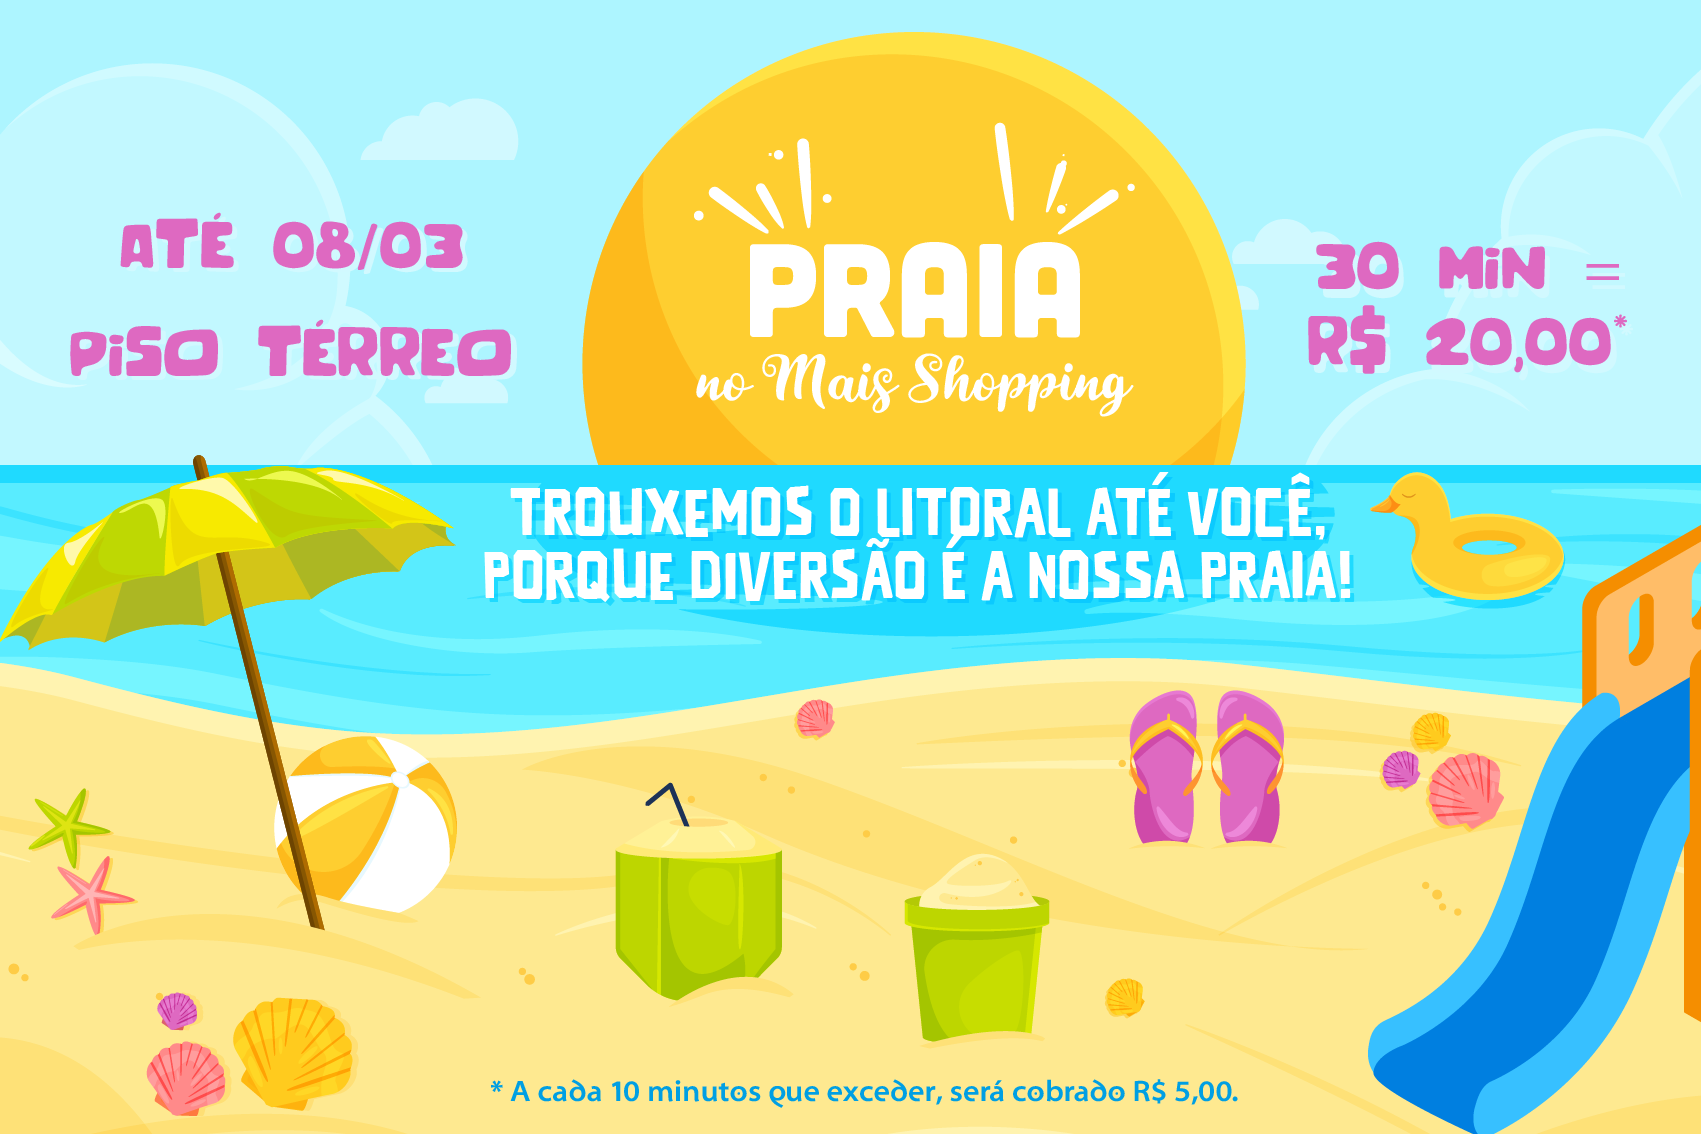 Praia no Mais Shopping